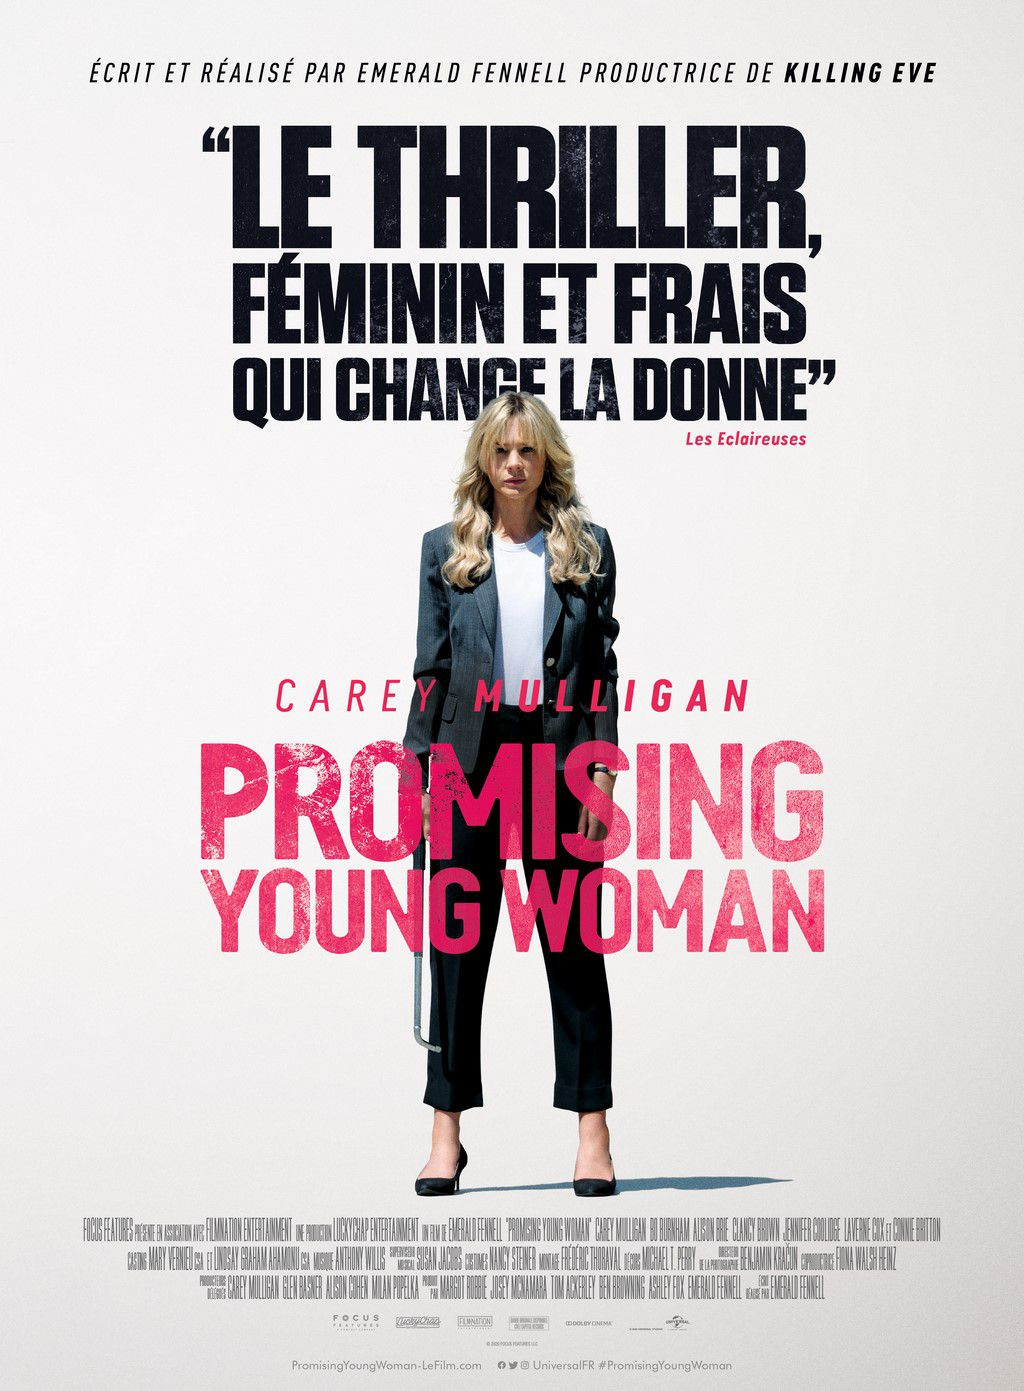 PROMISING YOUNG WOMAN #PromisingYoungWoman